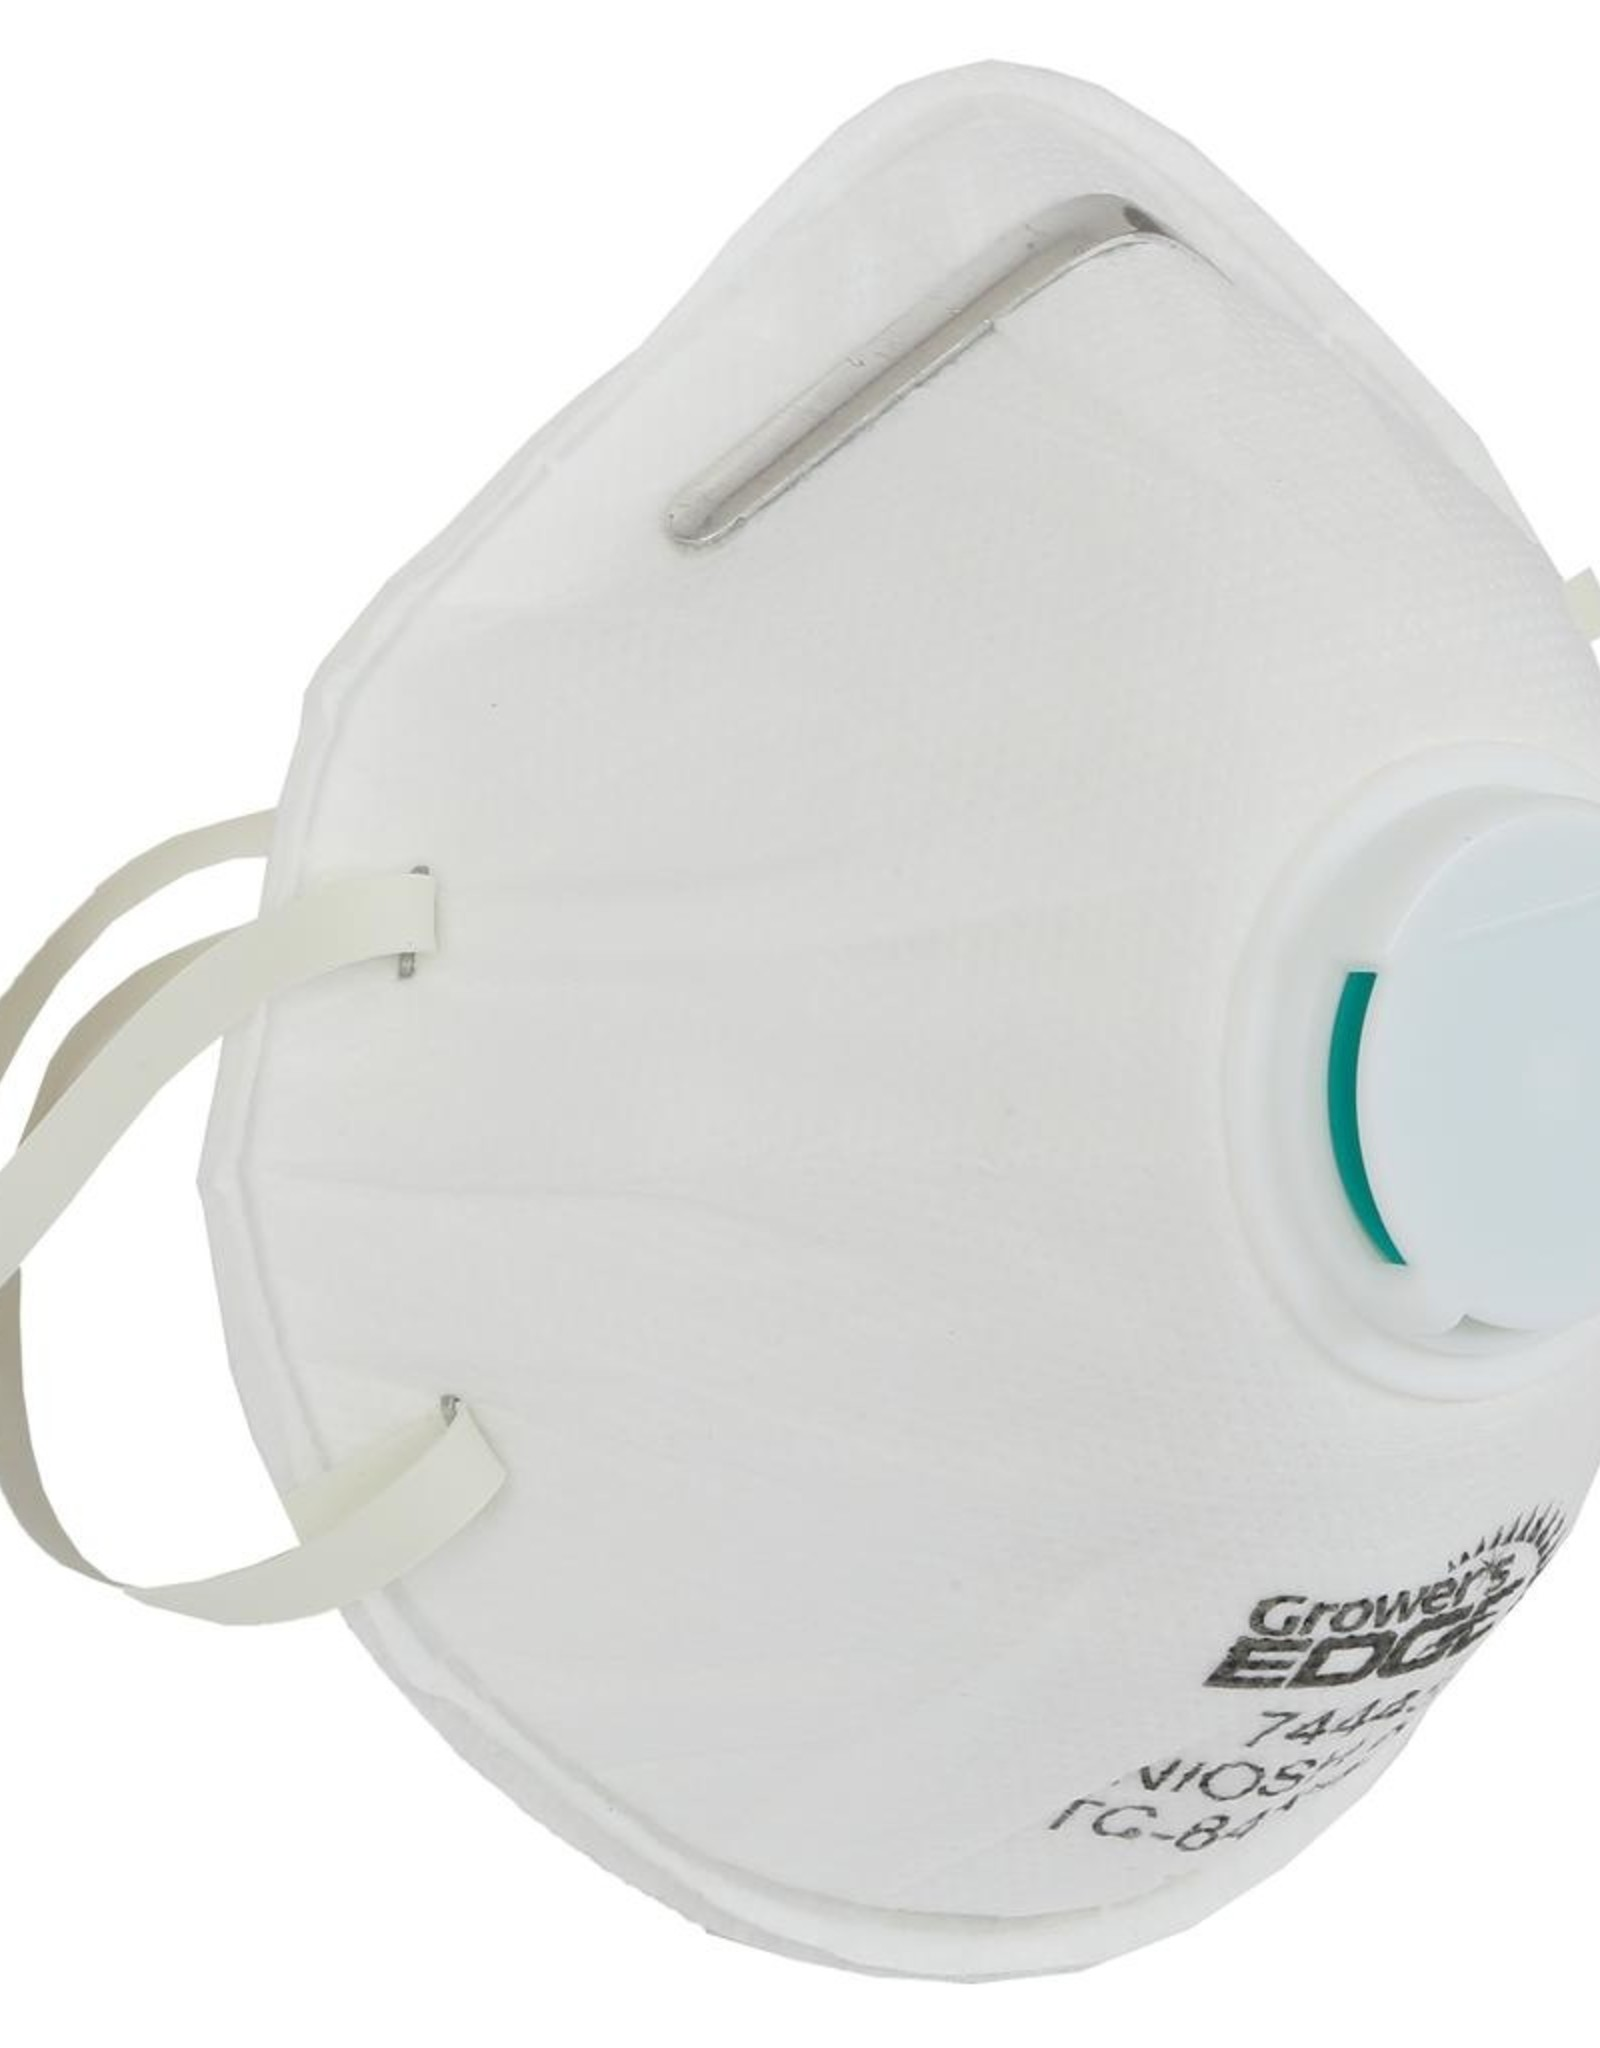 GROWERS EDGE Grower's Edge Clean Room Conical Particulate Respirator Mask w/Valve